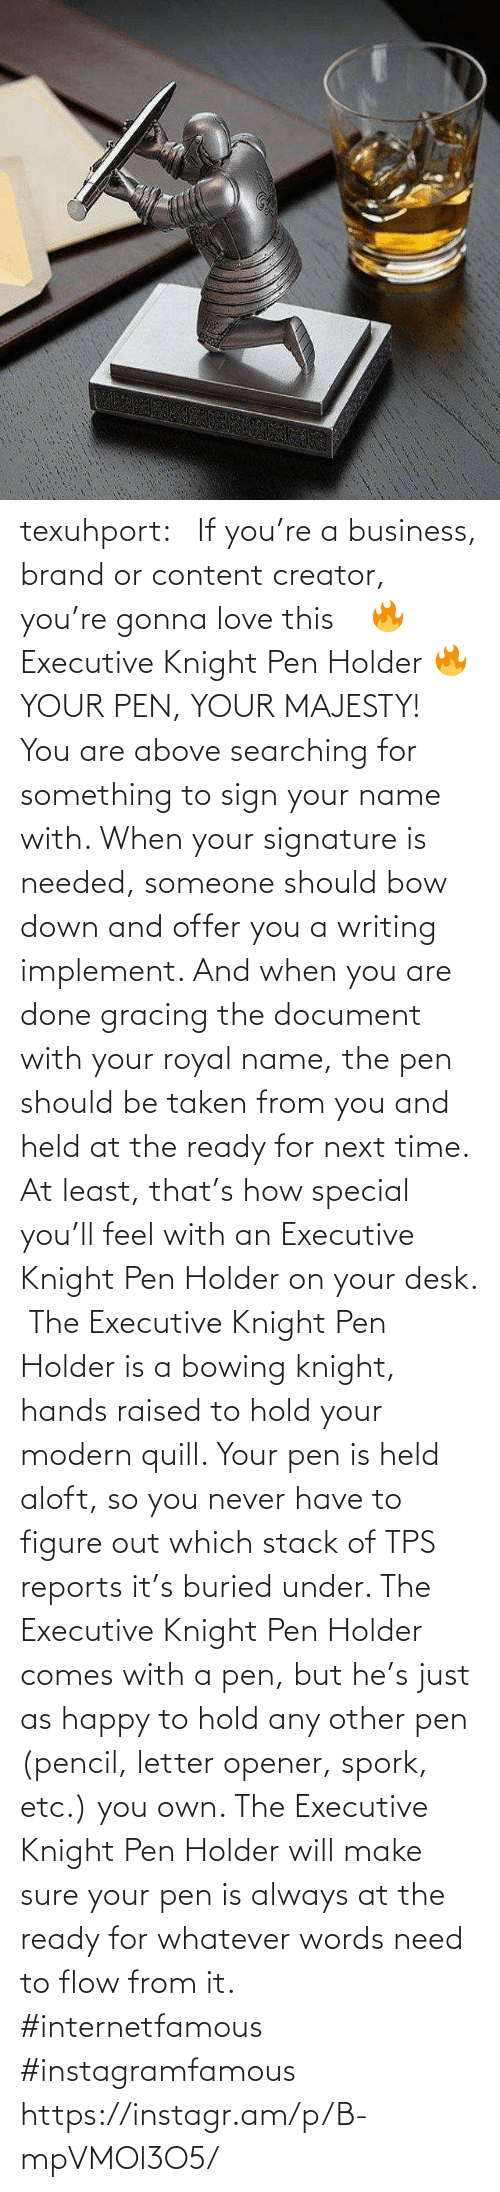 Held: texuhport:⎆ If you're a business, brand or content creator, you're gonna love this ⎆⁣ 🔥 Executive Knight Pen Holder 🔥⁣ YOUR PEN, YOUR MAJESTY!⁣ ⁣ You are above searching for something to sign your name with. When your signature is needed, someone should bow down and offer you a writing implement. And when you are done gracing the document with your royal name, the pen should be taken from you and held at the ready for next time. At least, that's how special you'll feel with an Executive Knight Pen Holder on your desk.⁣ ⁣ The Executive Knight Pen Holder is a bowing knight, hands raised to hold your modern quill. Your pen is held aloft, so you never have to figure out which stack of TPS reports it's buried under. The Executive Knight Pen Holder comes with a pen, but he's just as happy to hold any other pen (pencil, letter opener, spork, etc.) you own. The Executive Knight Pen Holder will make sure your pen is always at the ready for whatever words need to flow from it.⁣ #internetfamous  #instagramfamous https://instagr.am/p/B-mpVMOl3O5/